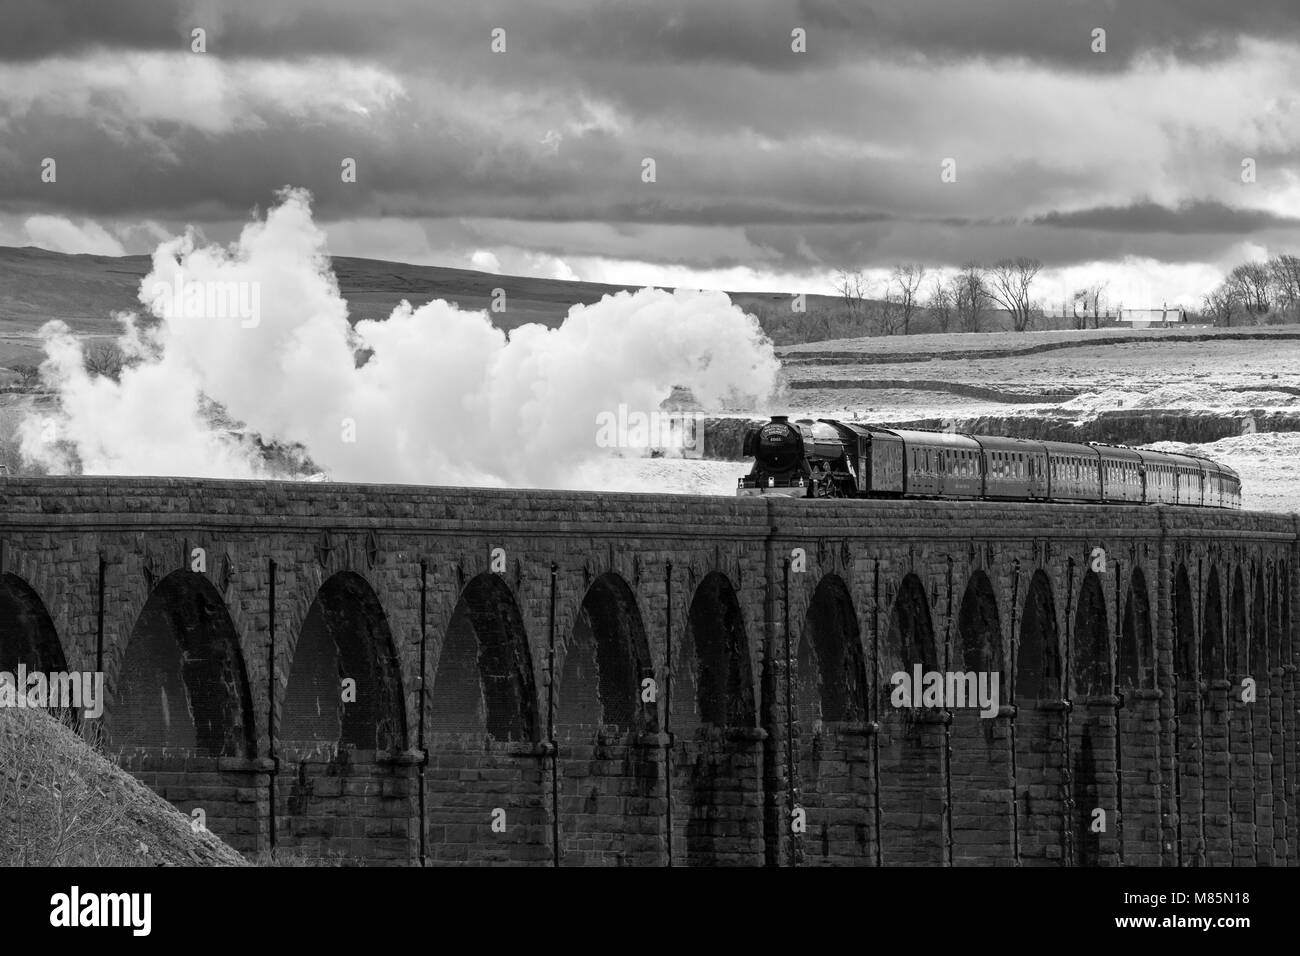 Puffing steam cloud, iconic locomotive LNER class A3 60103 Flying Scotsman, travels over arches of Ribblehead Viaduct - Stock Image